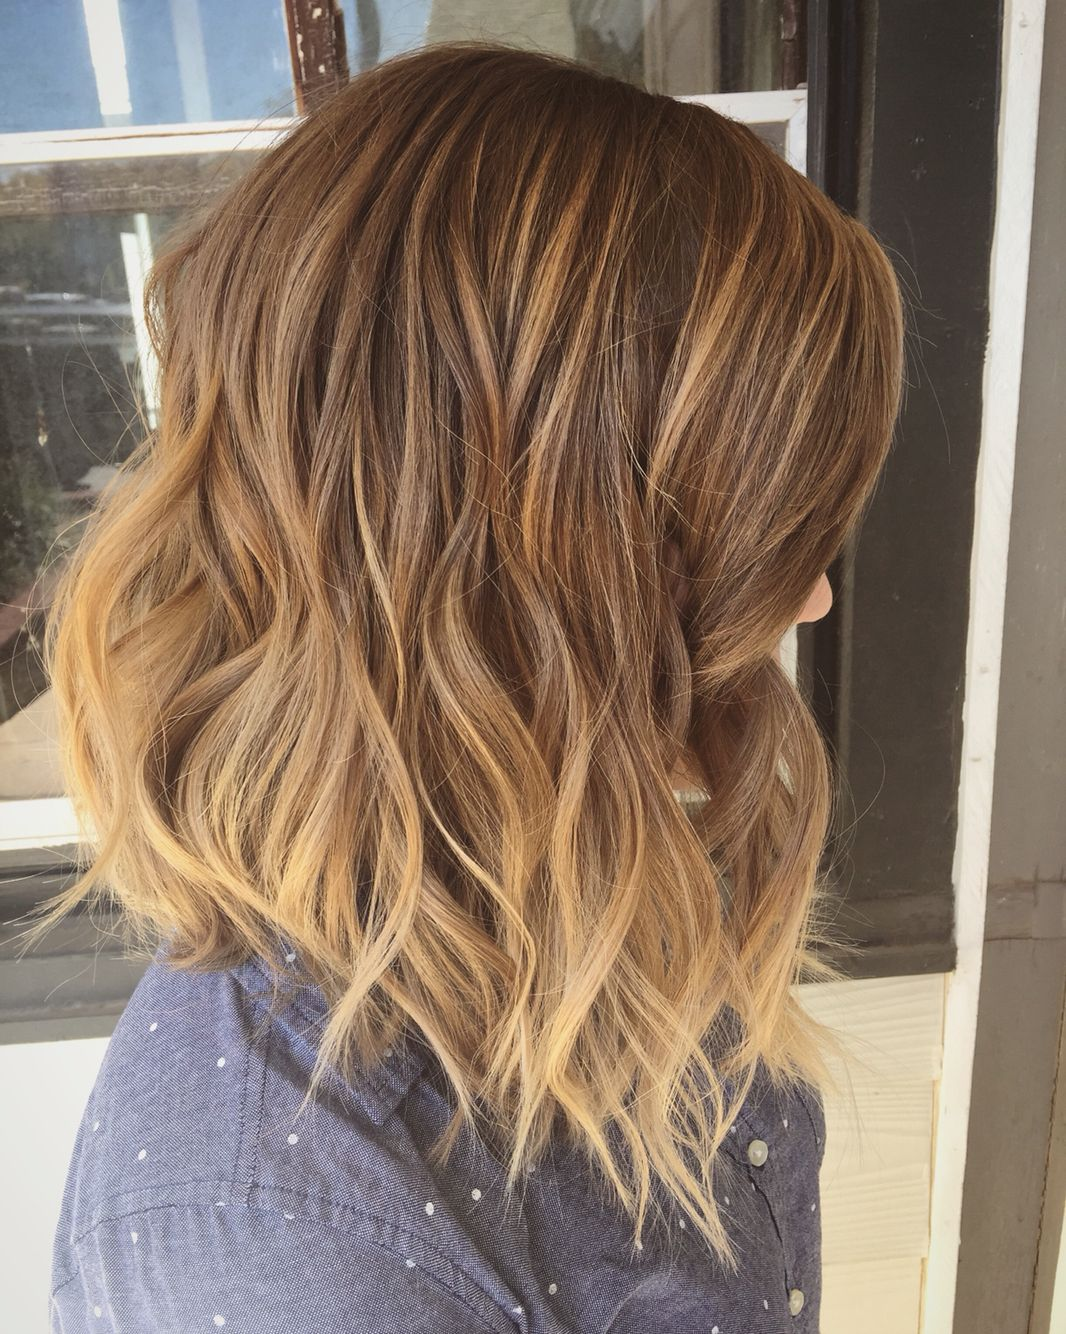 Color Too Flat For Me Want All Over Shorter And Thinned Out At The Bottom Curly Hair Styles Long Bob Hair Styles